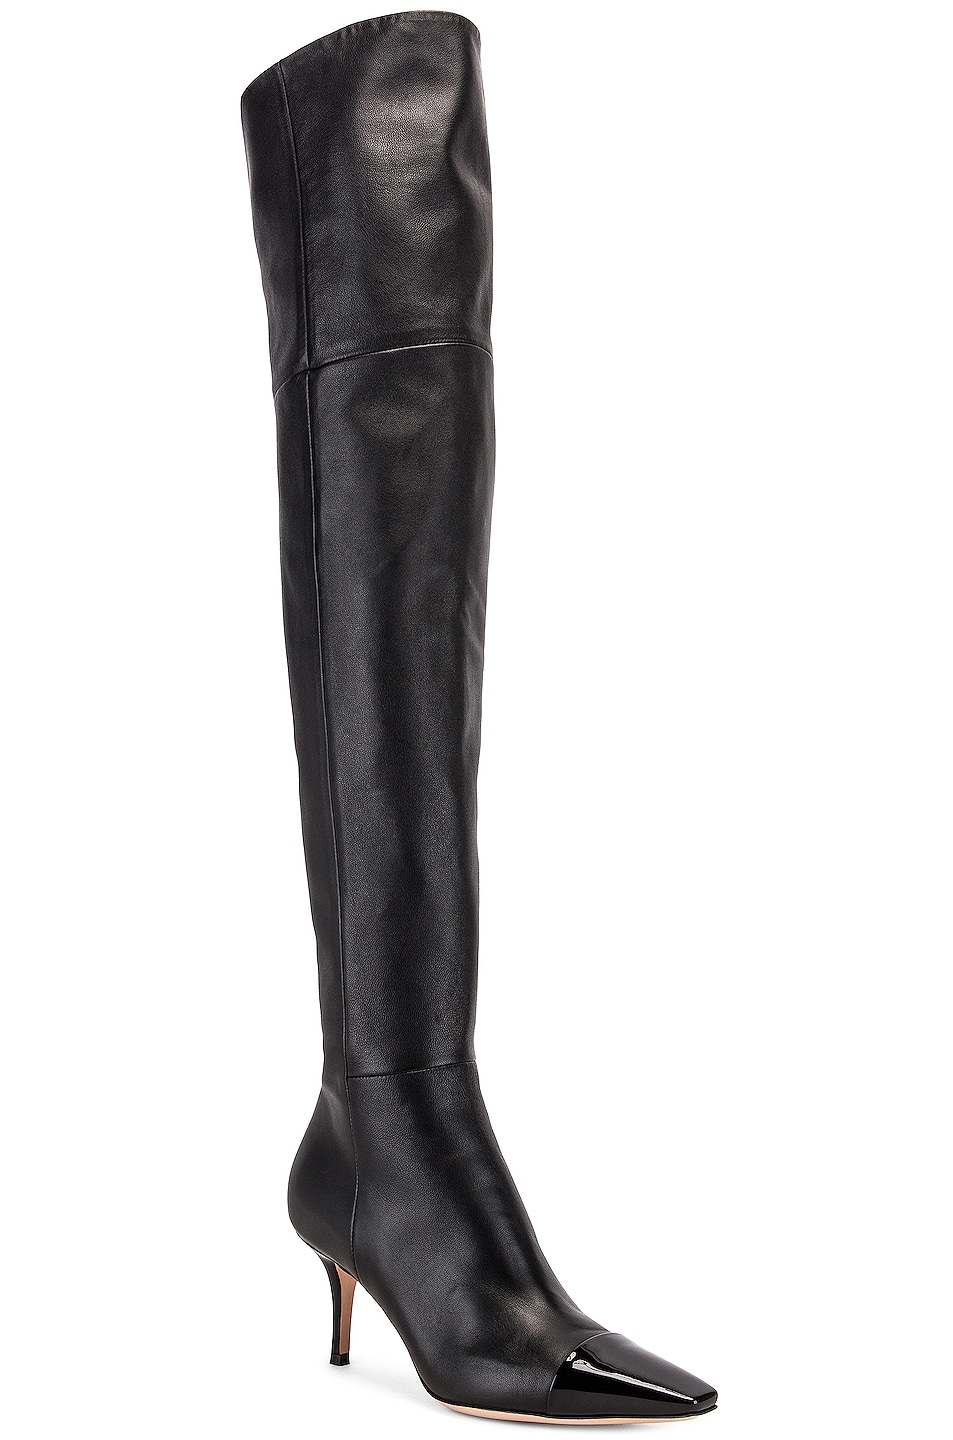 Image 2 of Gianvito Rossi Over the Knee Toe Cap Boots in Black